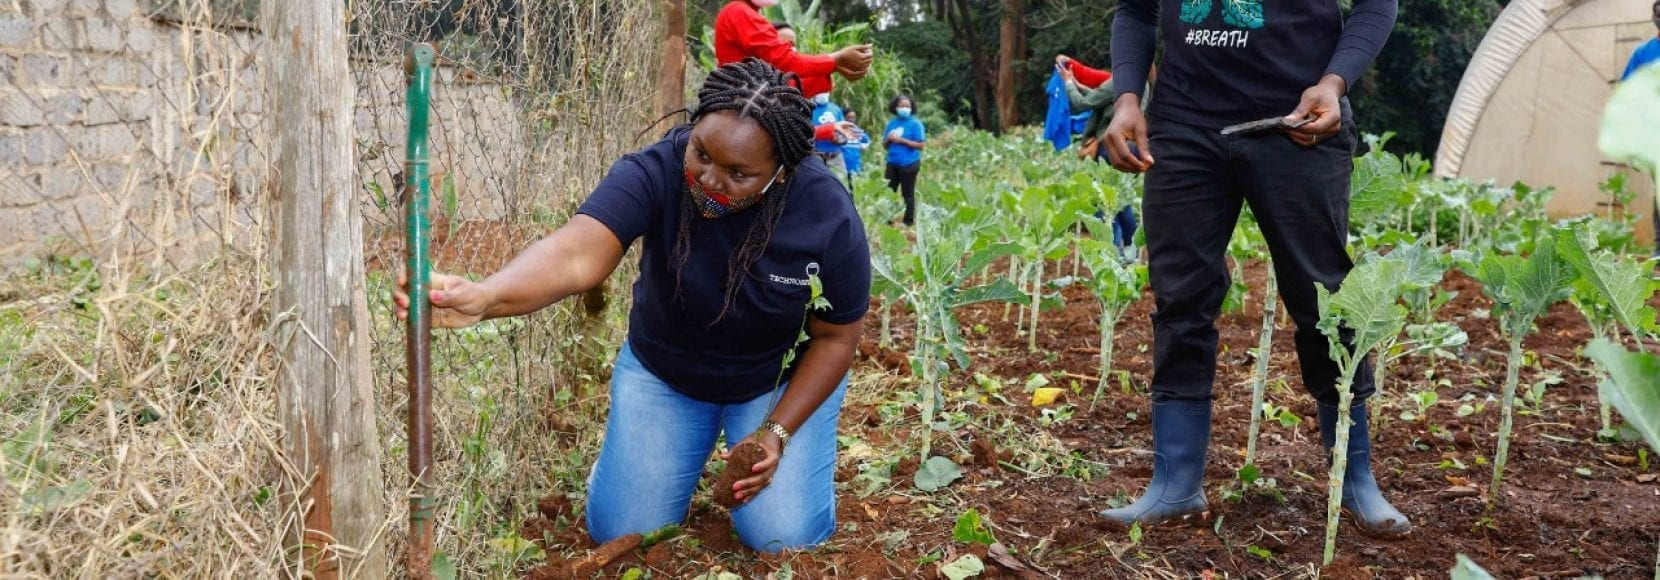 Volunteers participate in Citi's Global Community Day